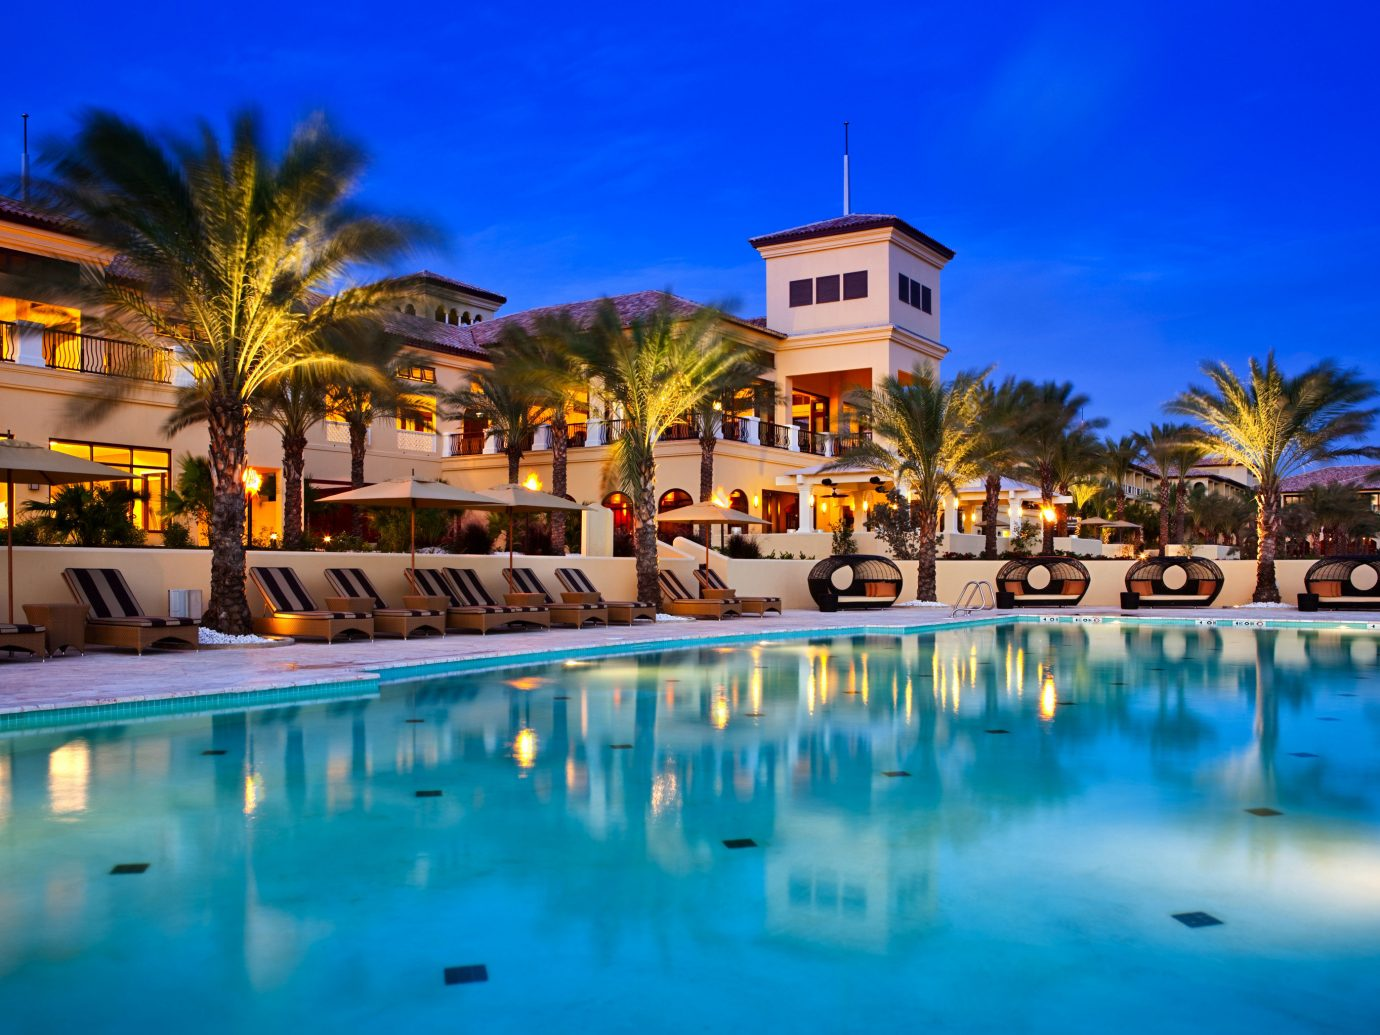 Maybe It Is Time For a Resort Vacation For a Change In Scenery.